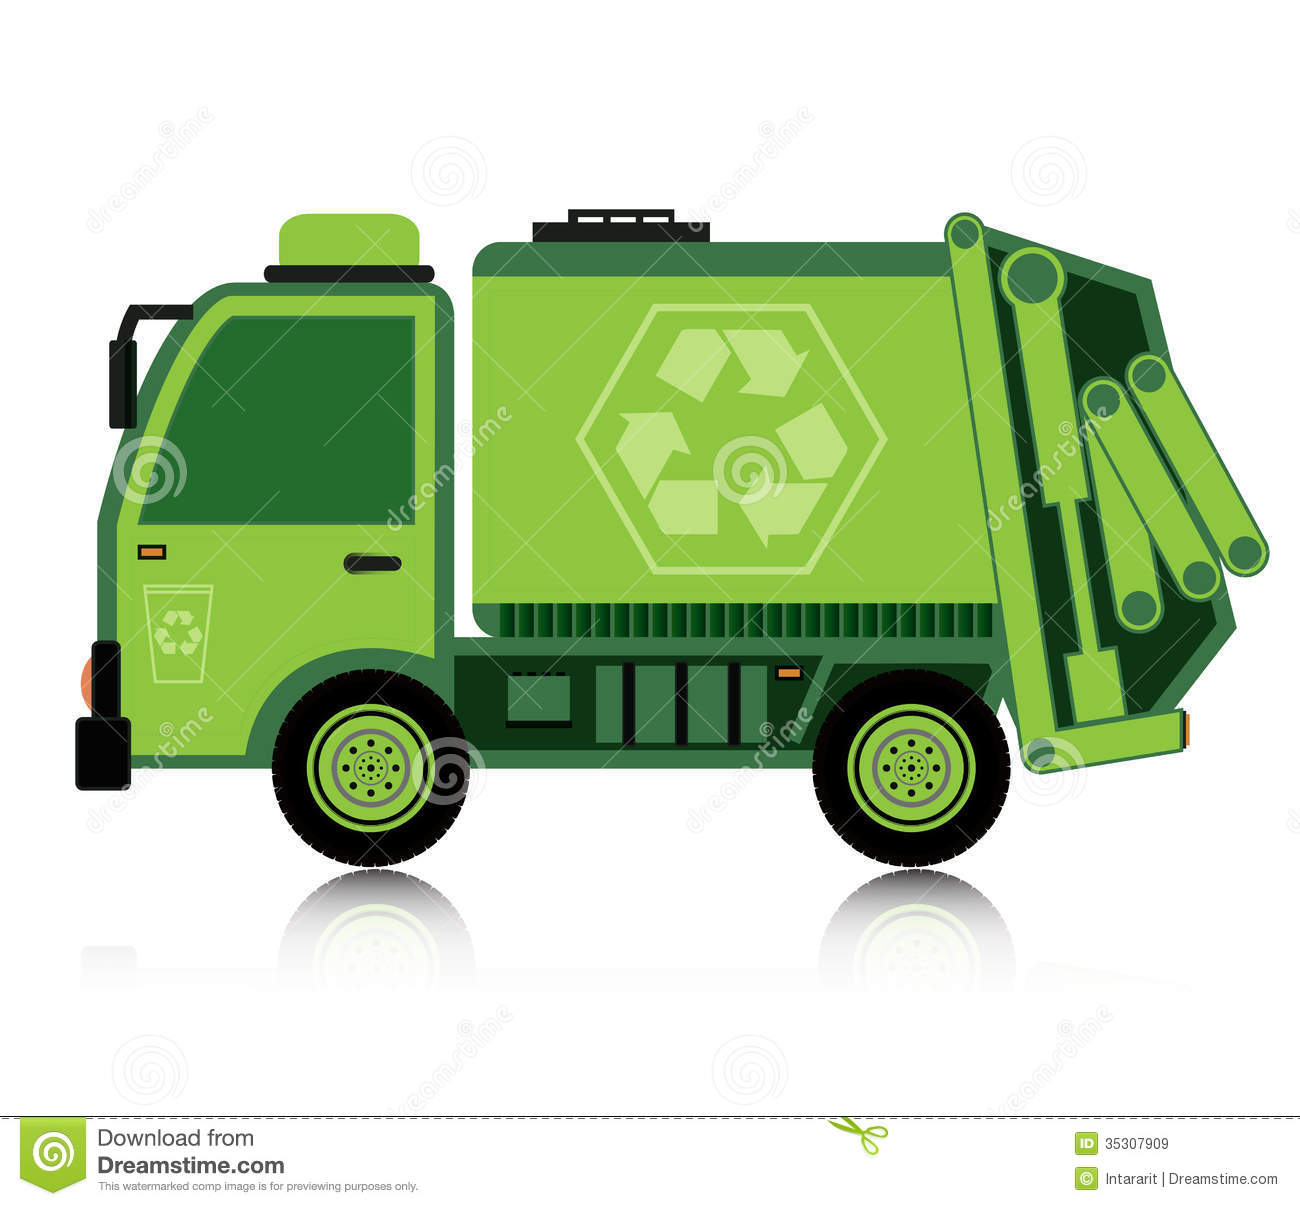 Garbage Truck Clipart. Clip Art. Ourcommunitymedia Free Clip Art Images.